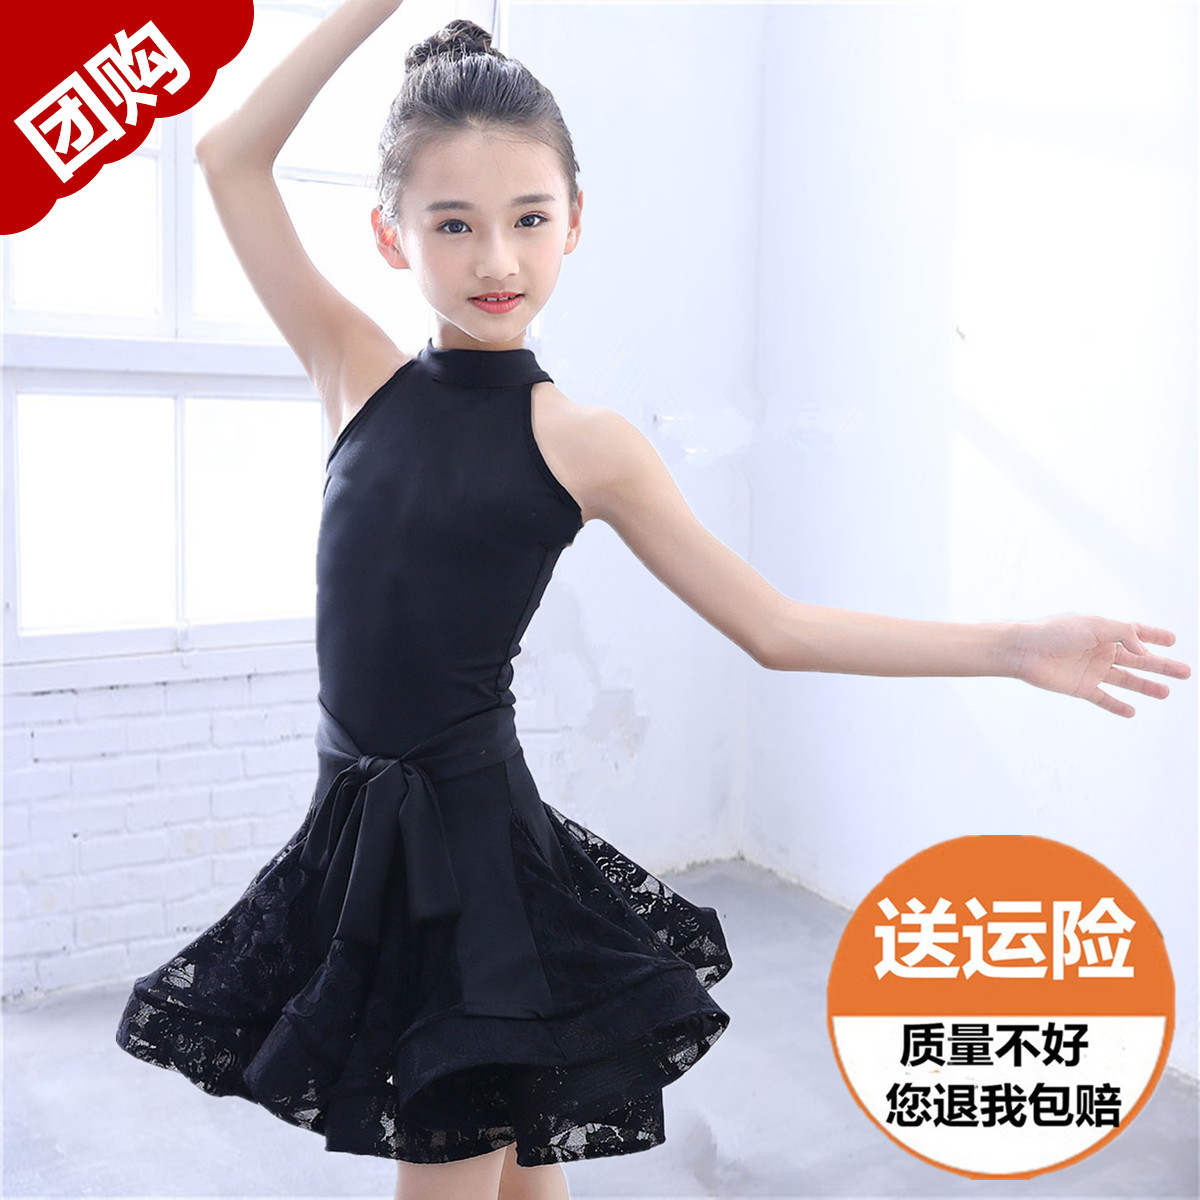 7340a656aec3 Girls Professional Latin dance exam grade costumes girls dance costumes  competition clothes children's performance suits lace skirt